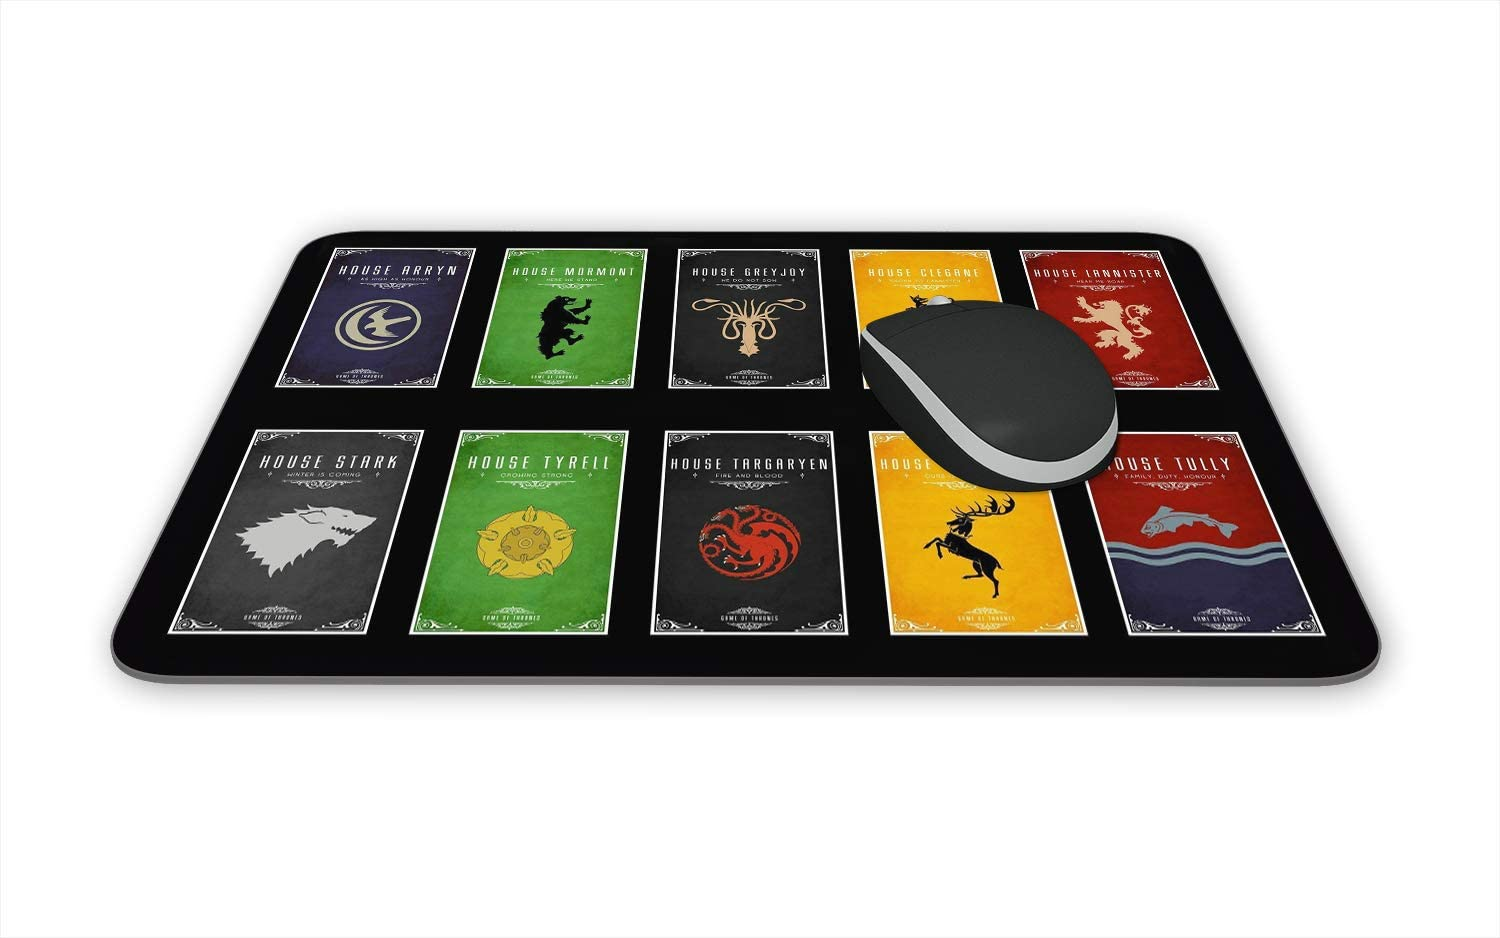 Game of Thrones Custom Mouse Pads Special Series Finale Set of Personalized Mousepads for Games of Throne Fans HBO GOT House Banners